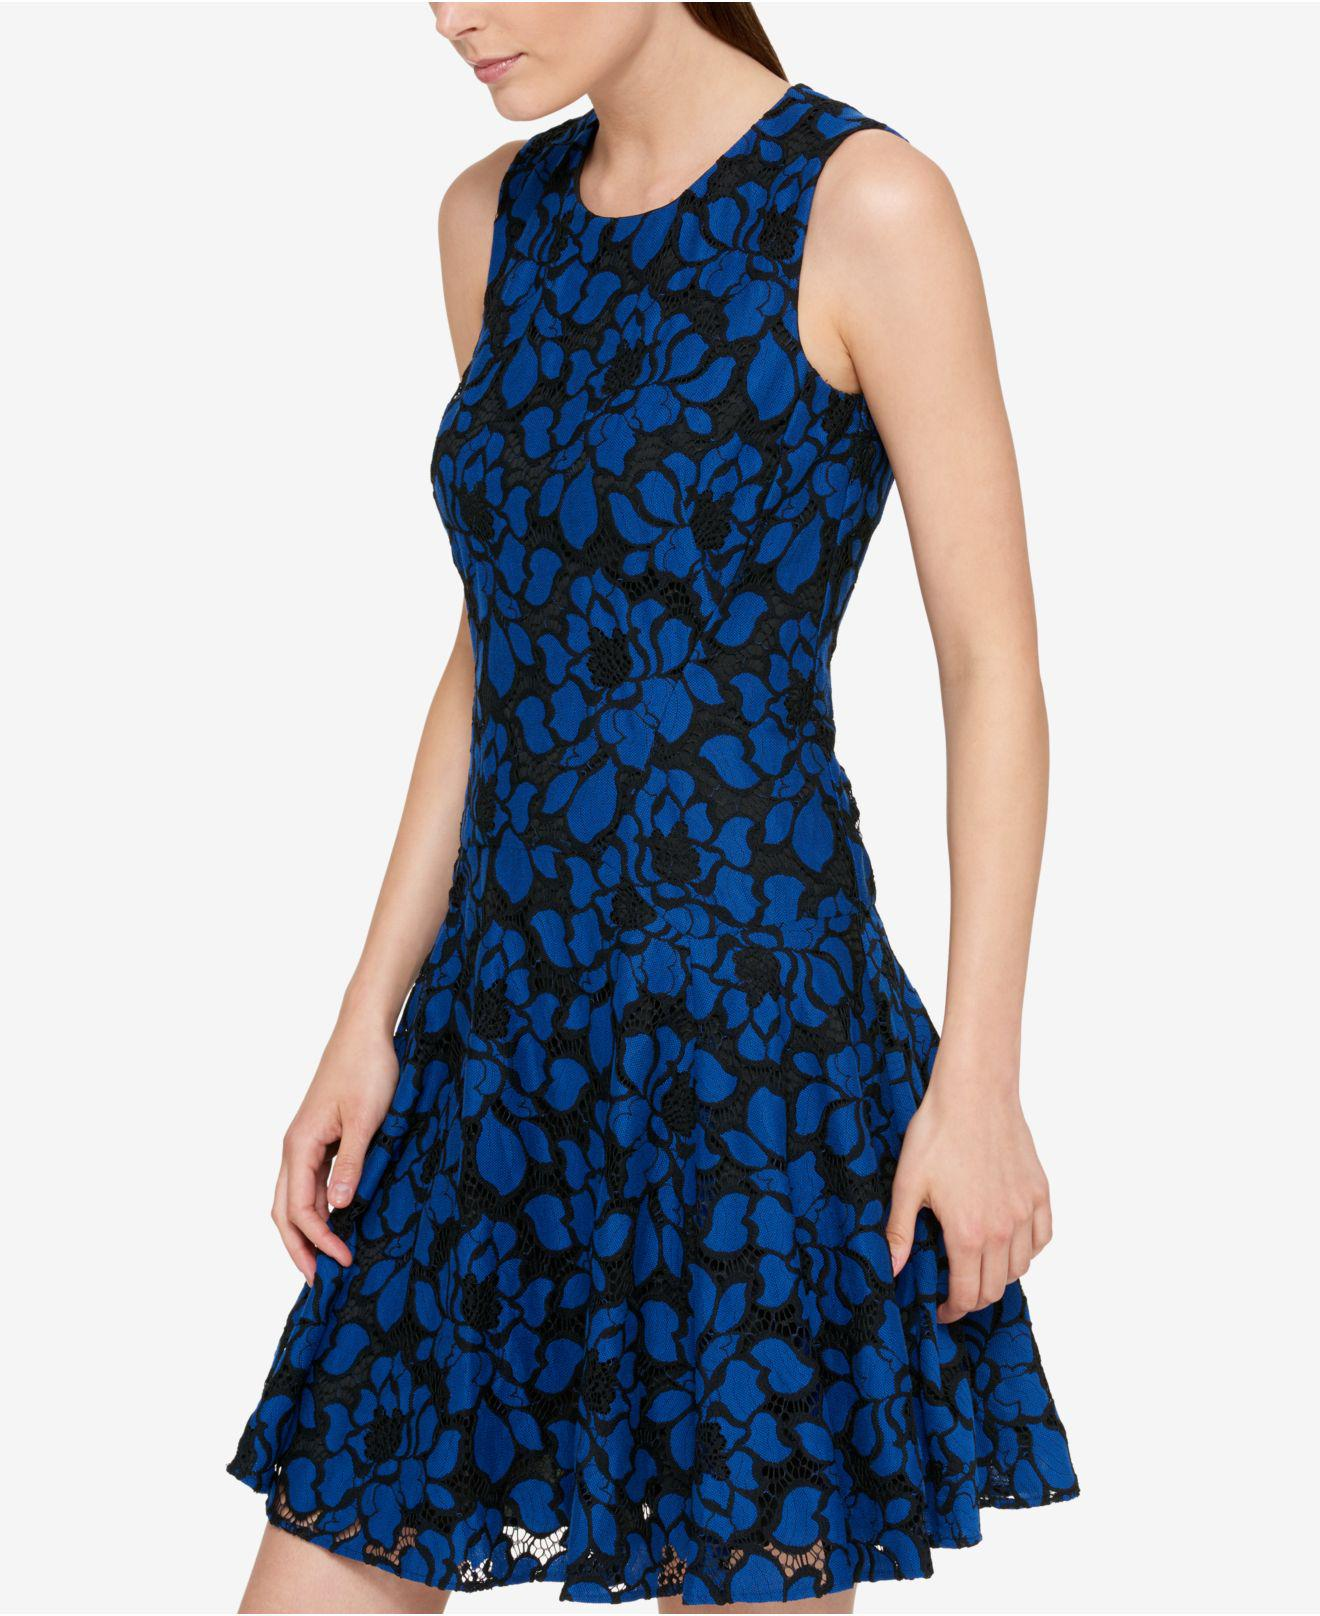 2b1e709e7ac Tommy Hilfiger Denim Lace Fit & Flare Dress in Blue - Lyst